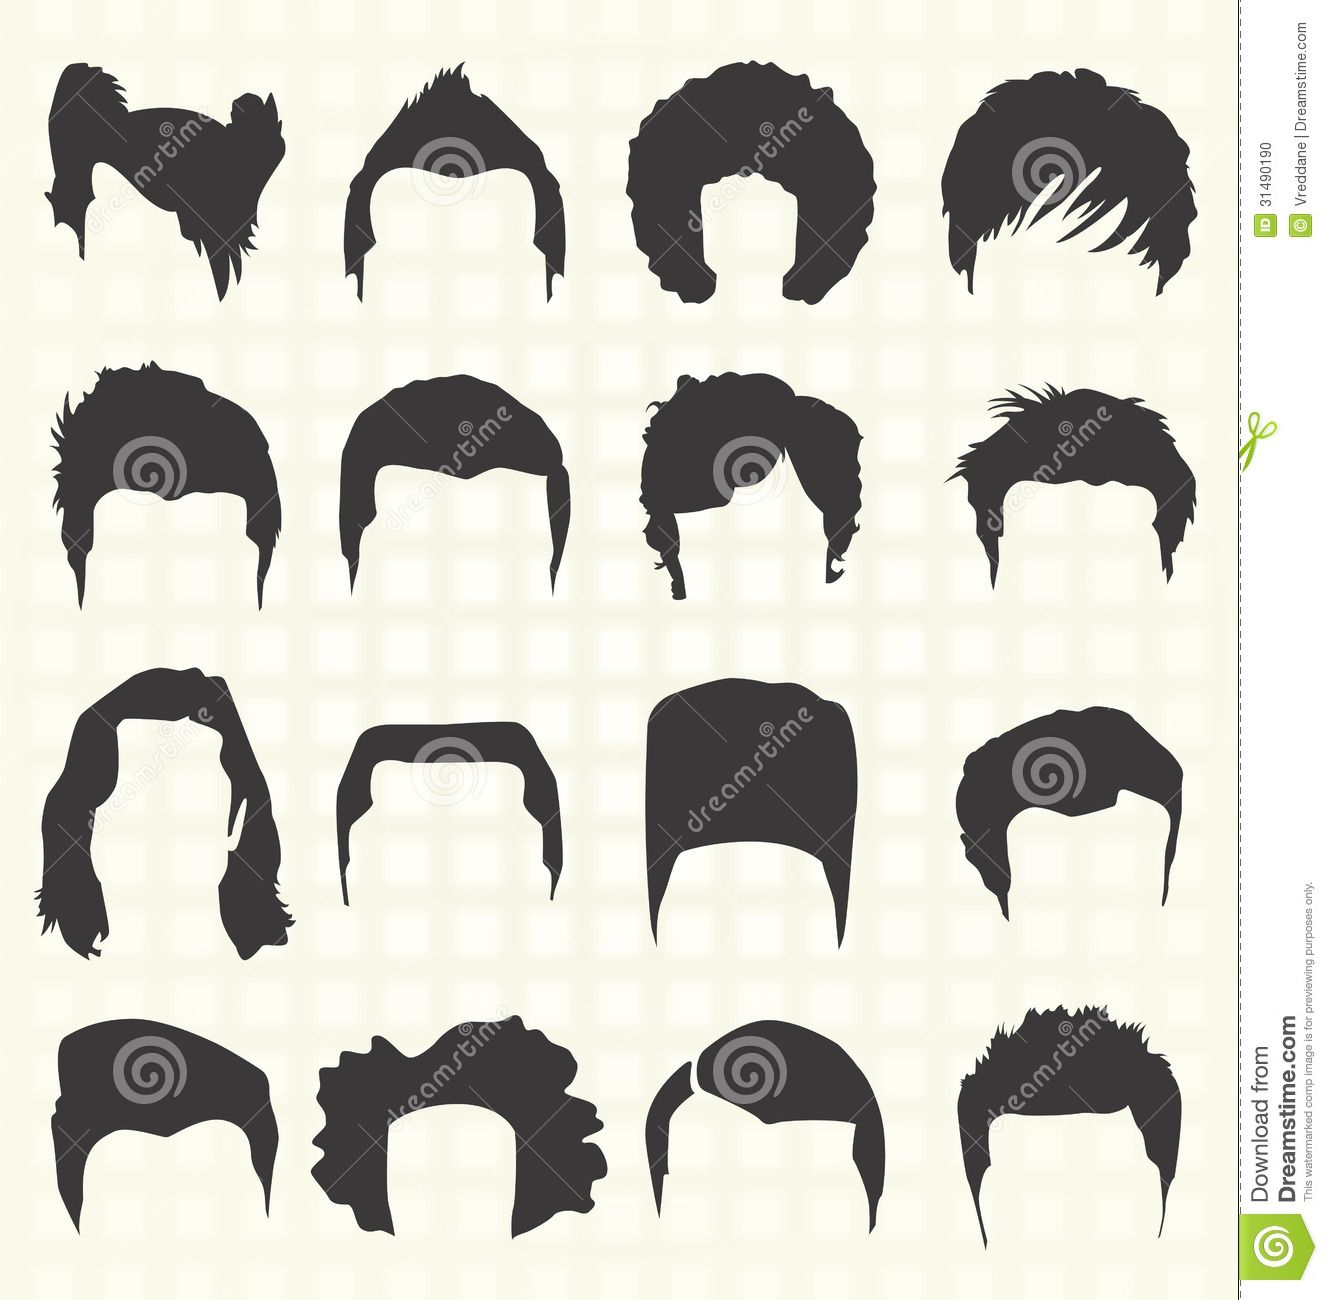 Men hair clipart banner royalty free download guy curly hair wig clipart - Google Search | Comm Art ... banner royalty free download